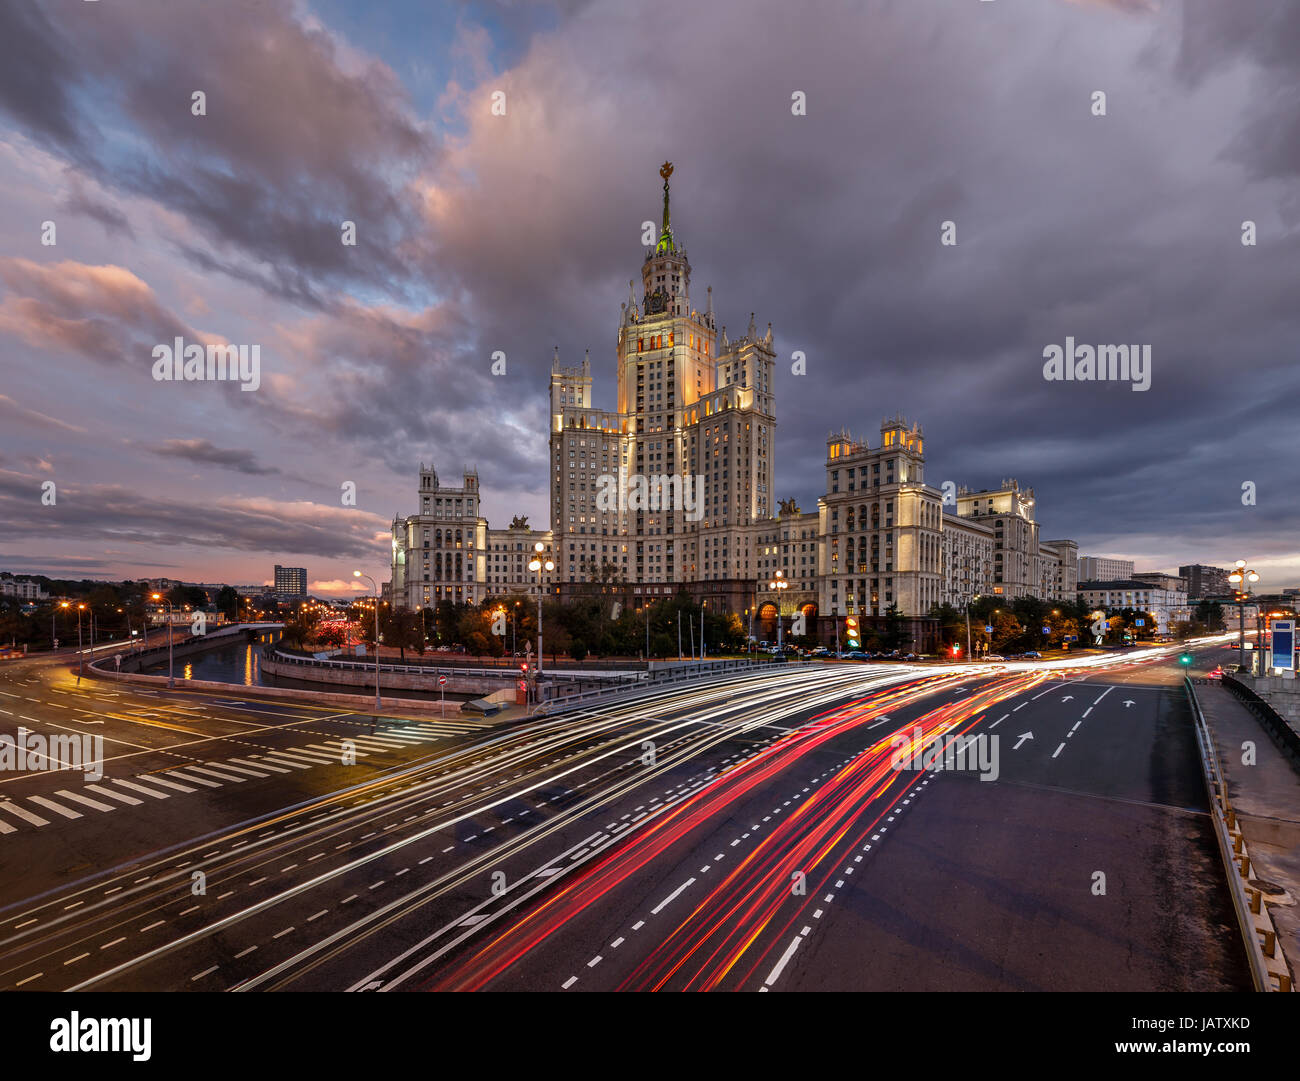 Skyscraper on Kotelnicheskaya Embankment and Traffic Trails at Dusk, Moscow, Russia Stock Photo